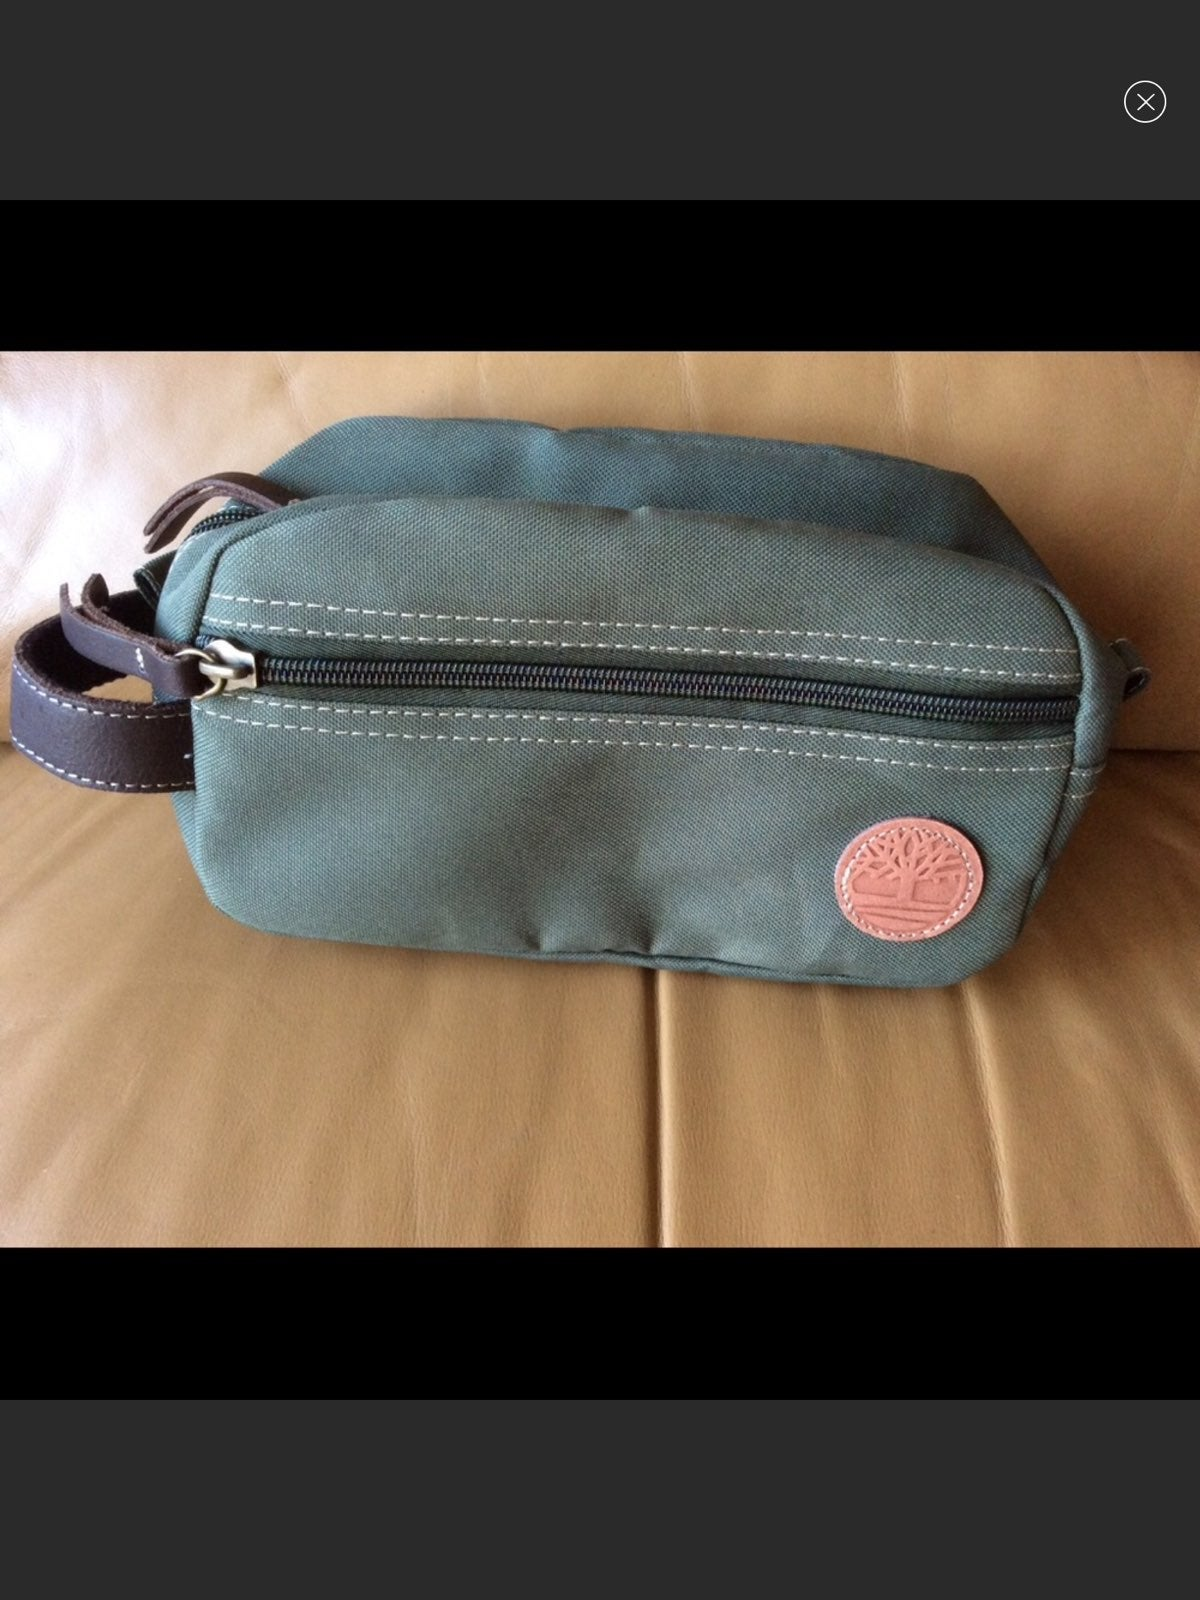 Timberland Green Canvas Toiletry Bag